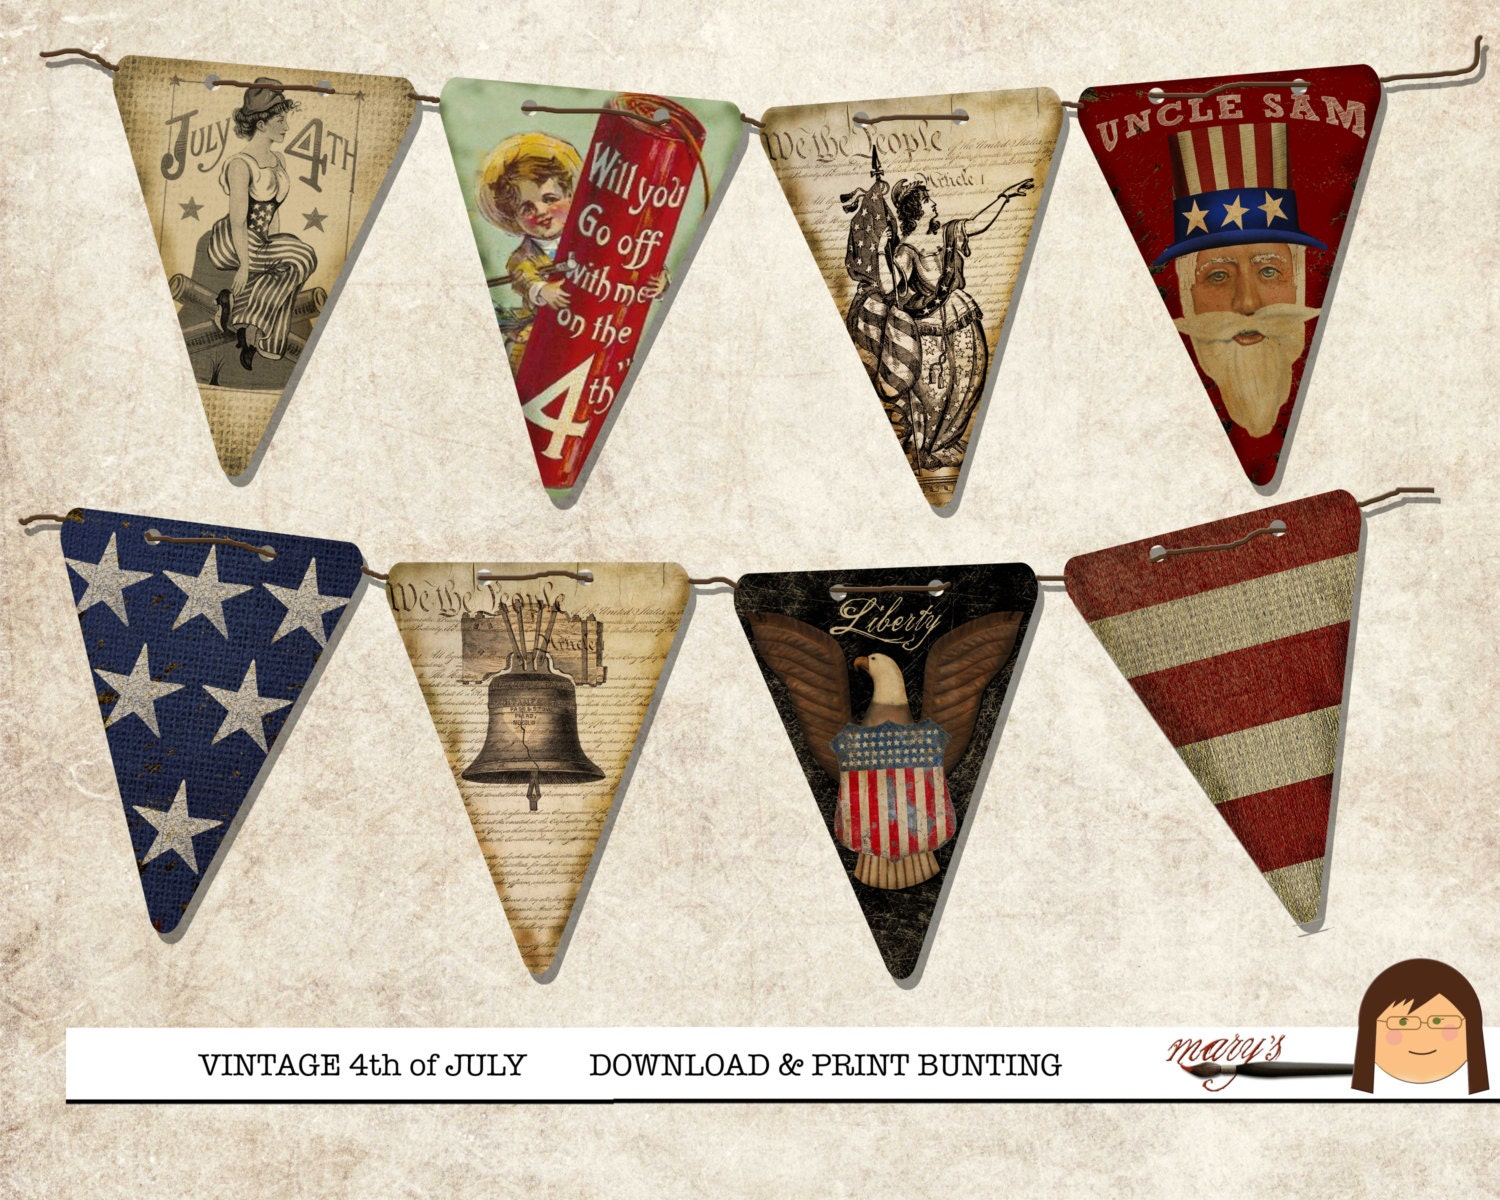 Vintage 4th of July Bunting Flags